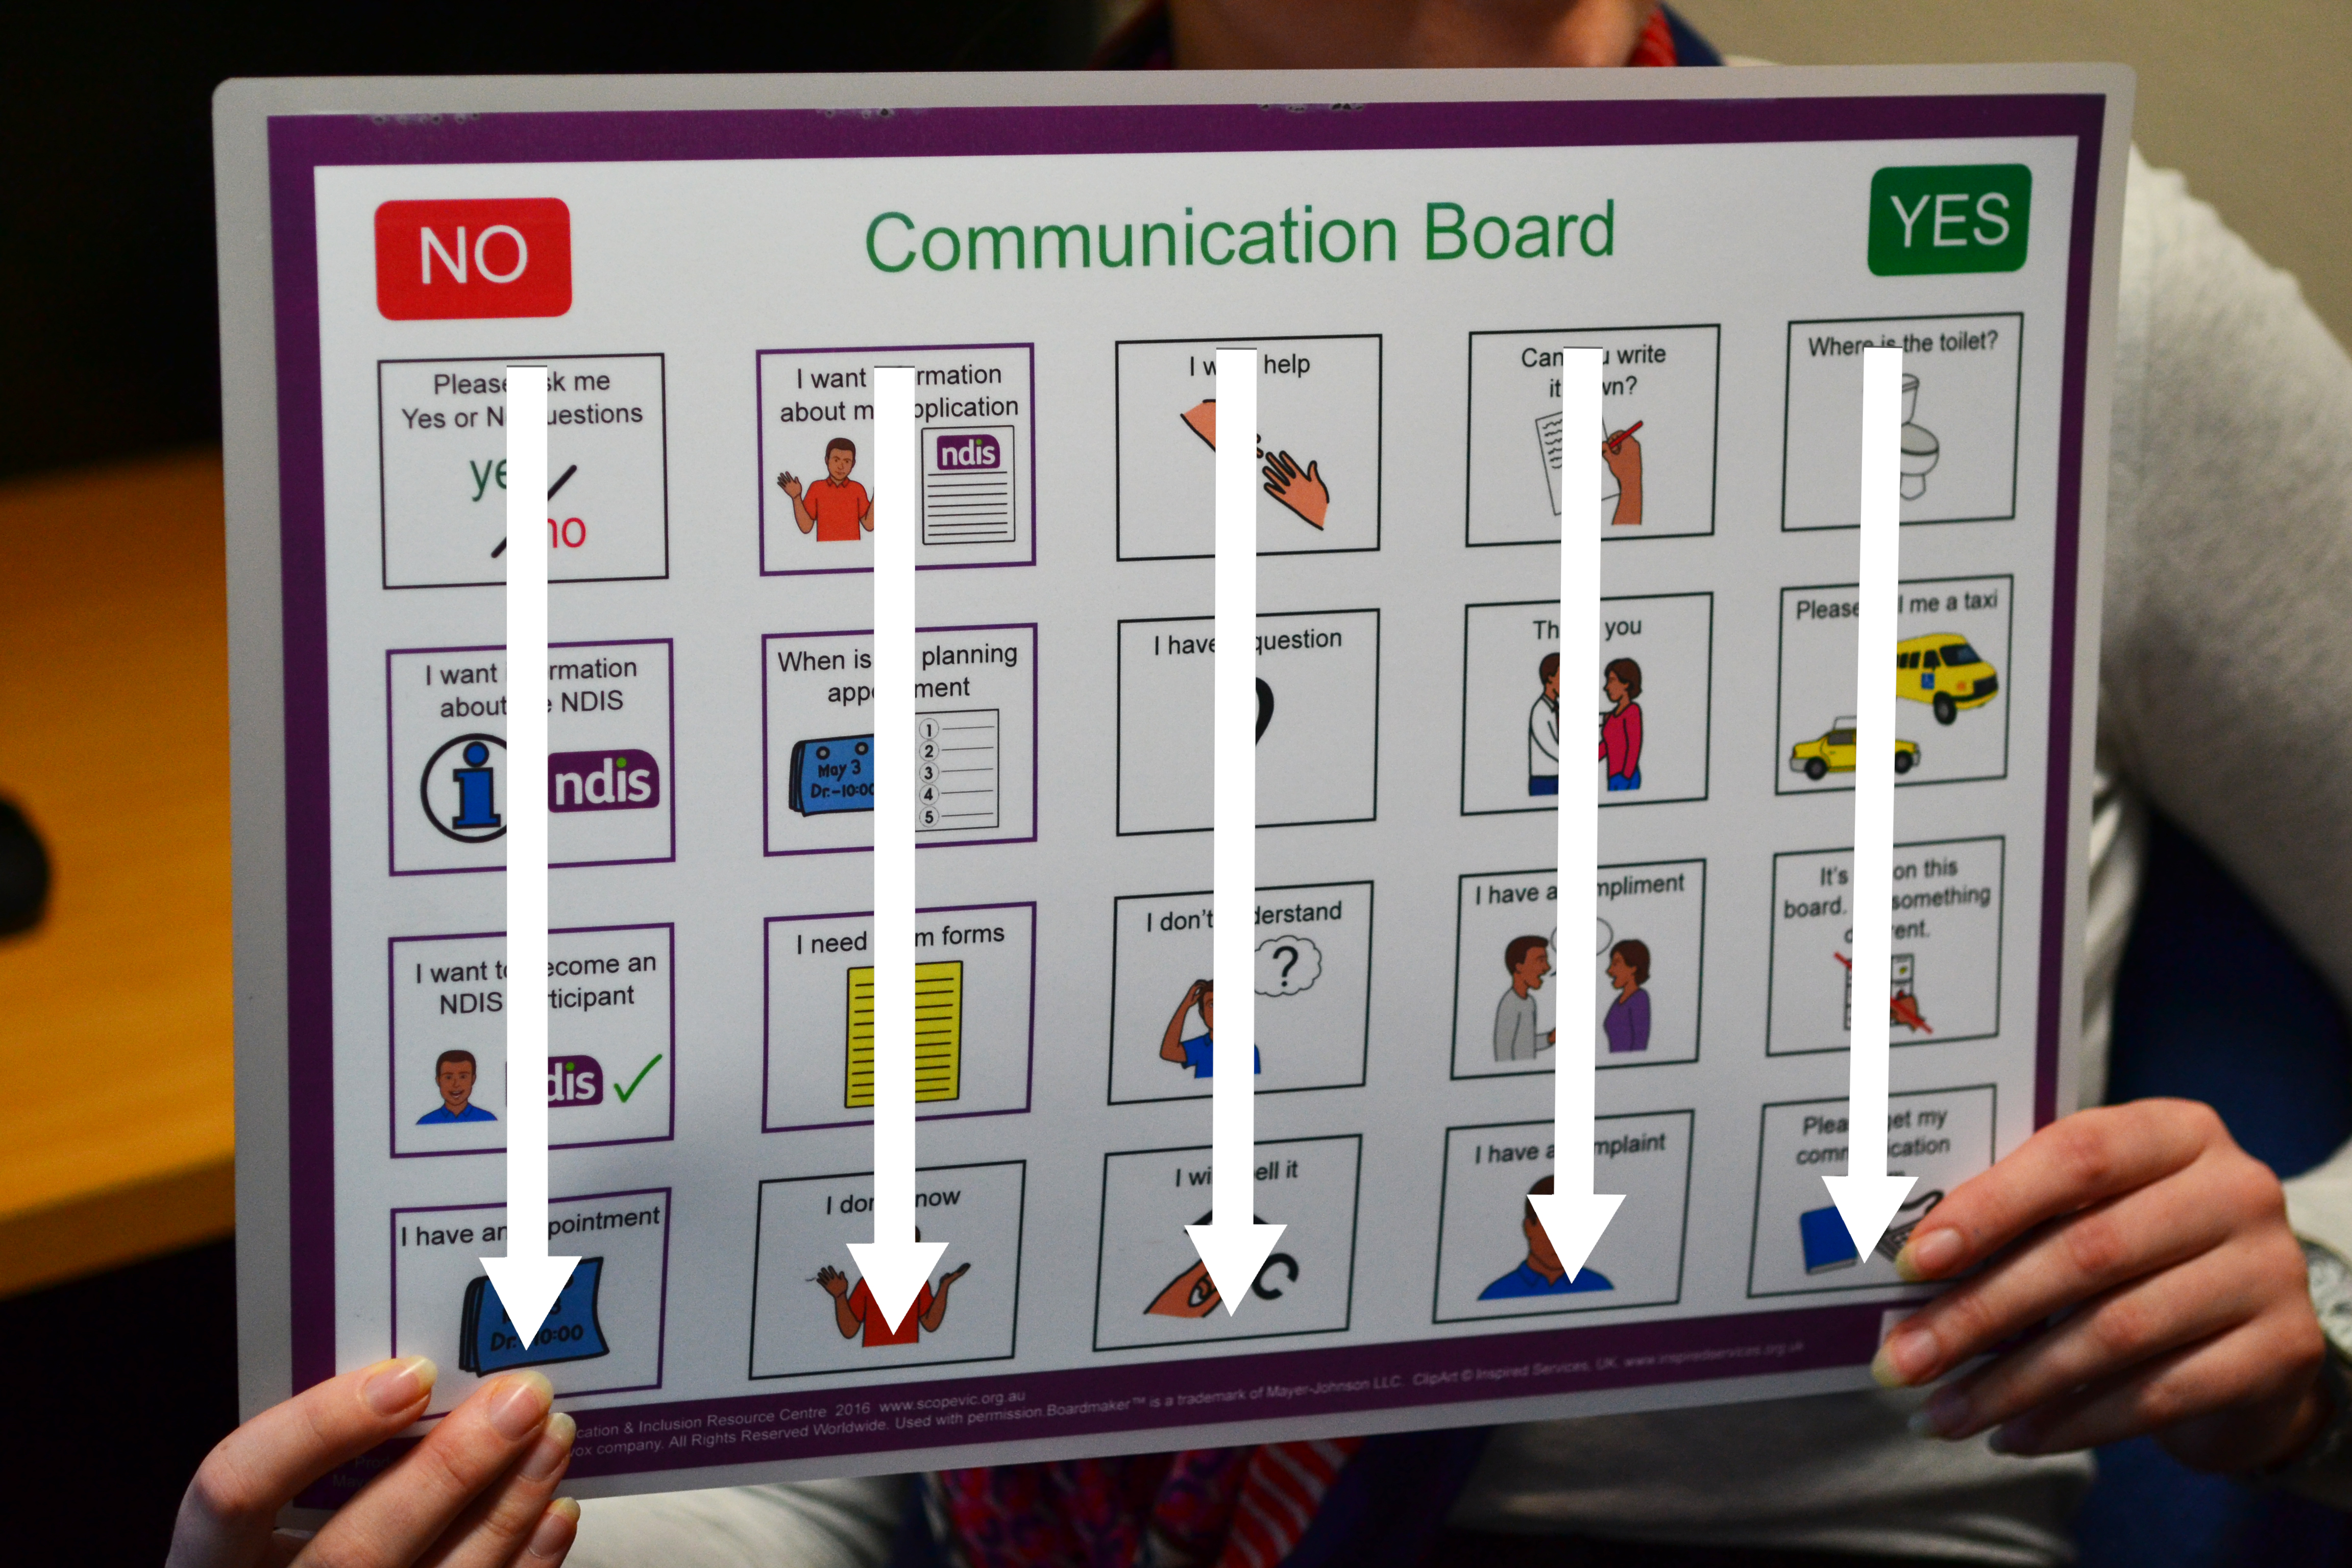 Communication board with arrows pointing down